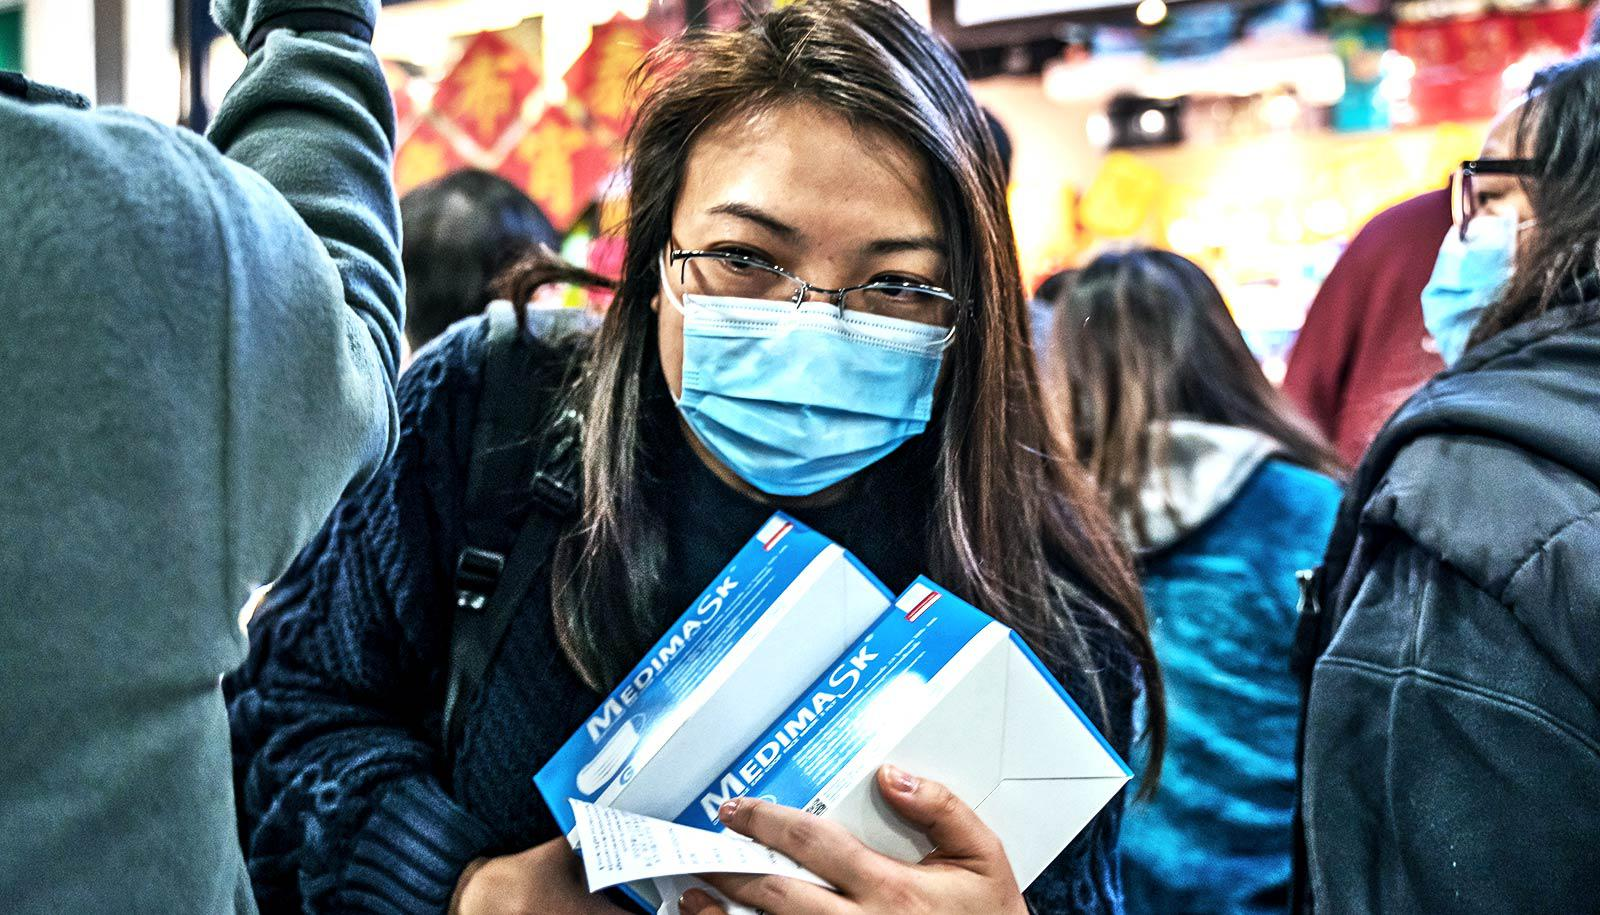 A woman wearing a blue medical masks carries two boxes of more medical masks as she moves through a crowd